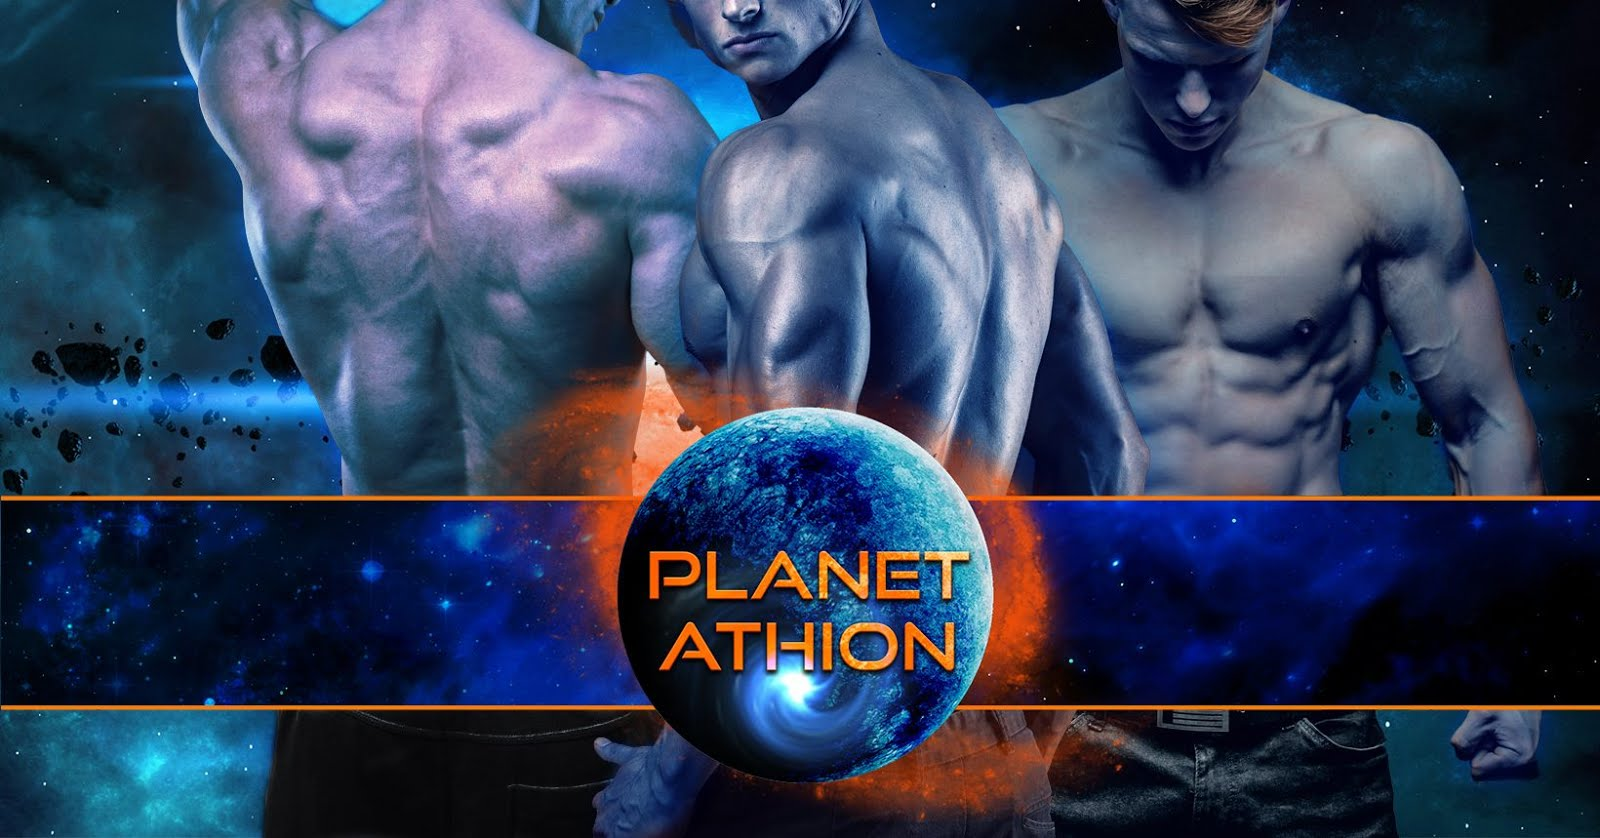 Planet Athion